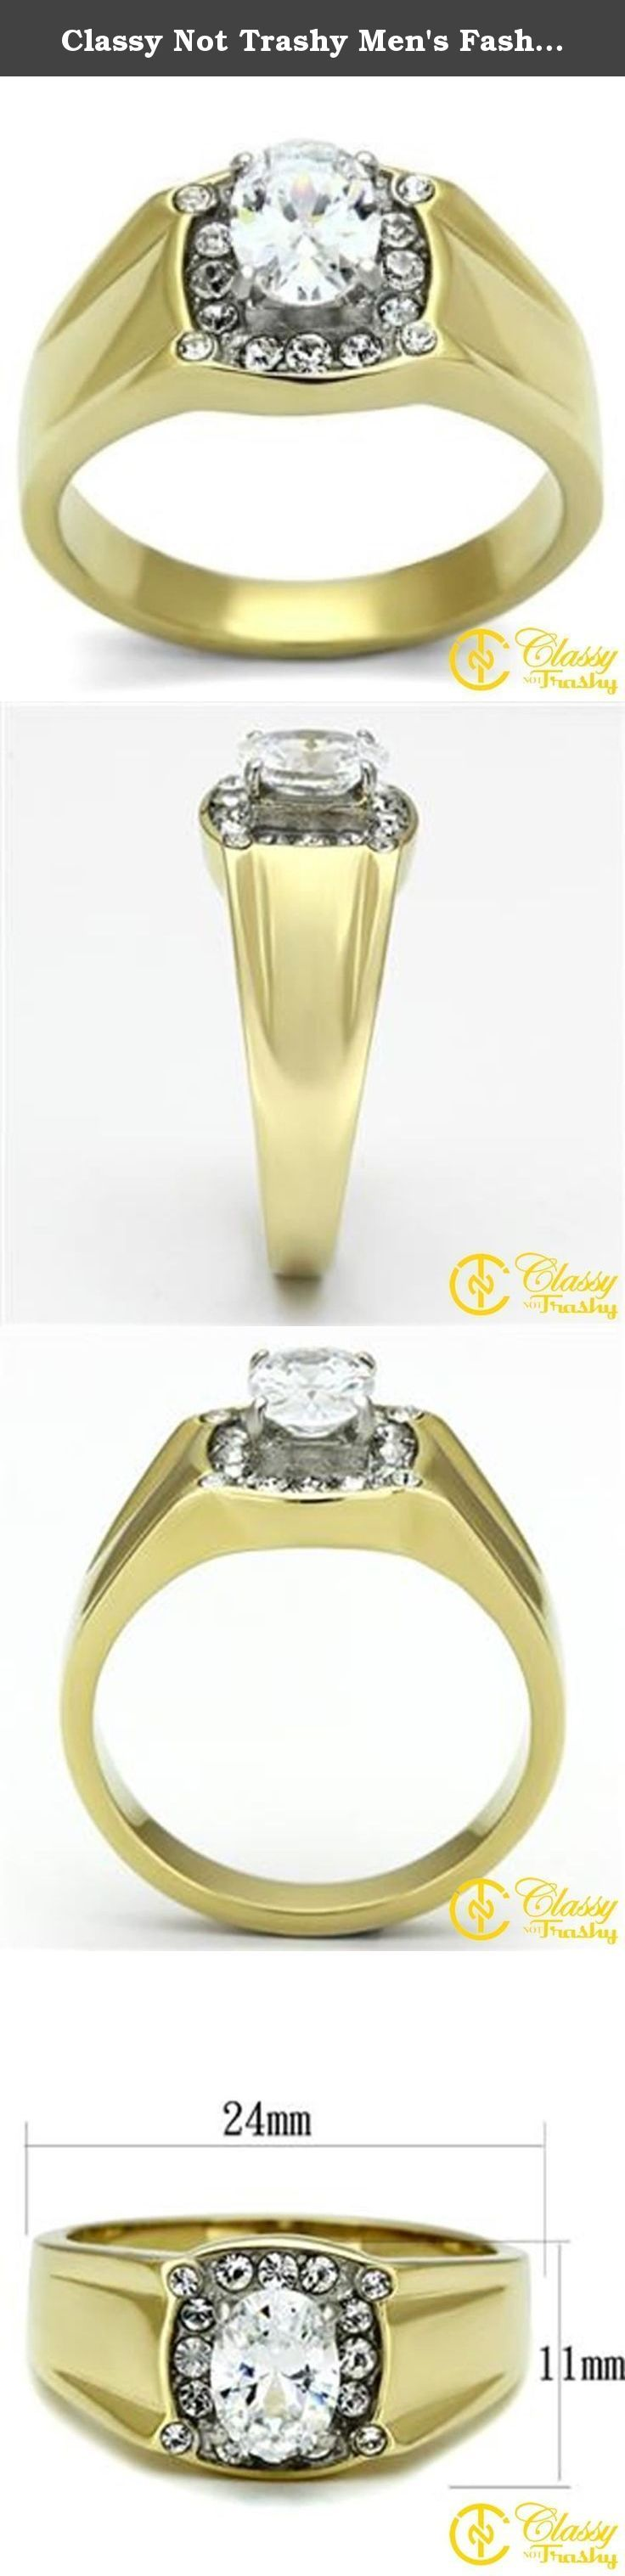 Classy Not Trashy Men's Fashion Jewelry Ring, Premium Grade Stainless Steel Clear Cubic Zirconia CZ Oval Ring Size 13. This gorgeous Classy Not Trashy® Men's Fashion Jewelry Ring, Premium Grade High Quality Stainless Steel Clear Cubic Zirconia CZ Oval Ring Size 13 has the finest details and highest quality you will find anywhere! Our team prides ourselves on finding the best prices without reducing quality, and in this Men's Ring Collection, we have definitely done just that! The...